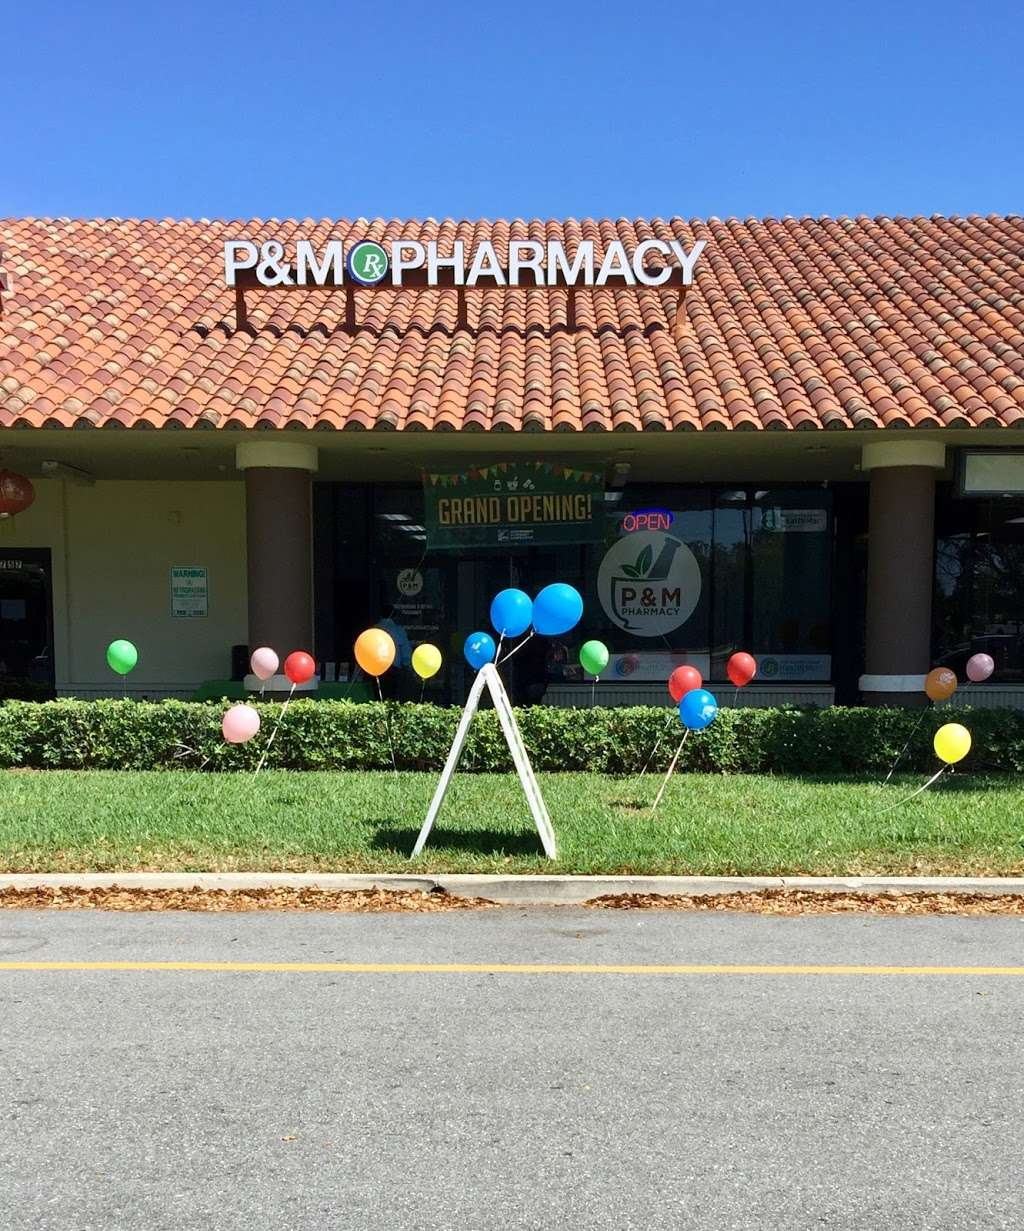 P&M Pharmacy | Greenacres Pharmacy - pharmacy  | Photo 1 of 10 | Address: 7753 Lake Worth Rd, Greenacres, FL 33467, USA | Phone: (561) 660-8650